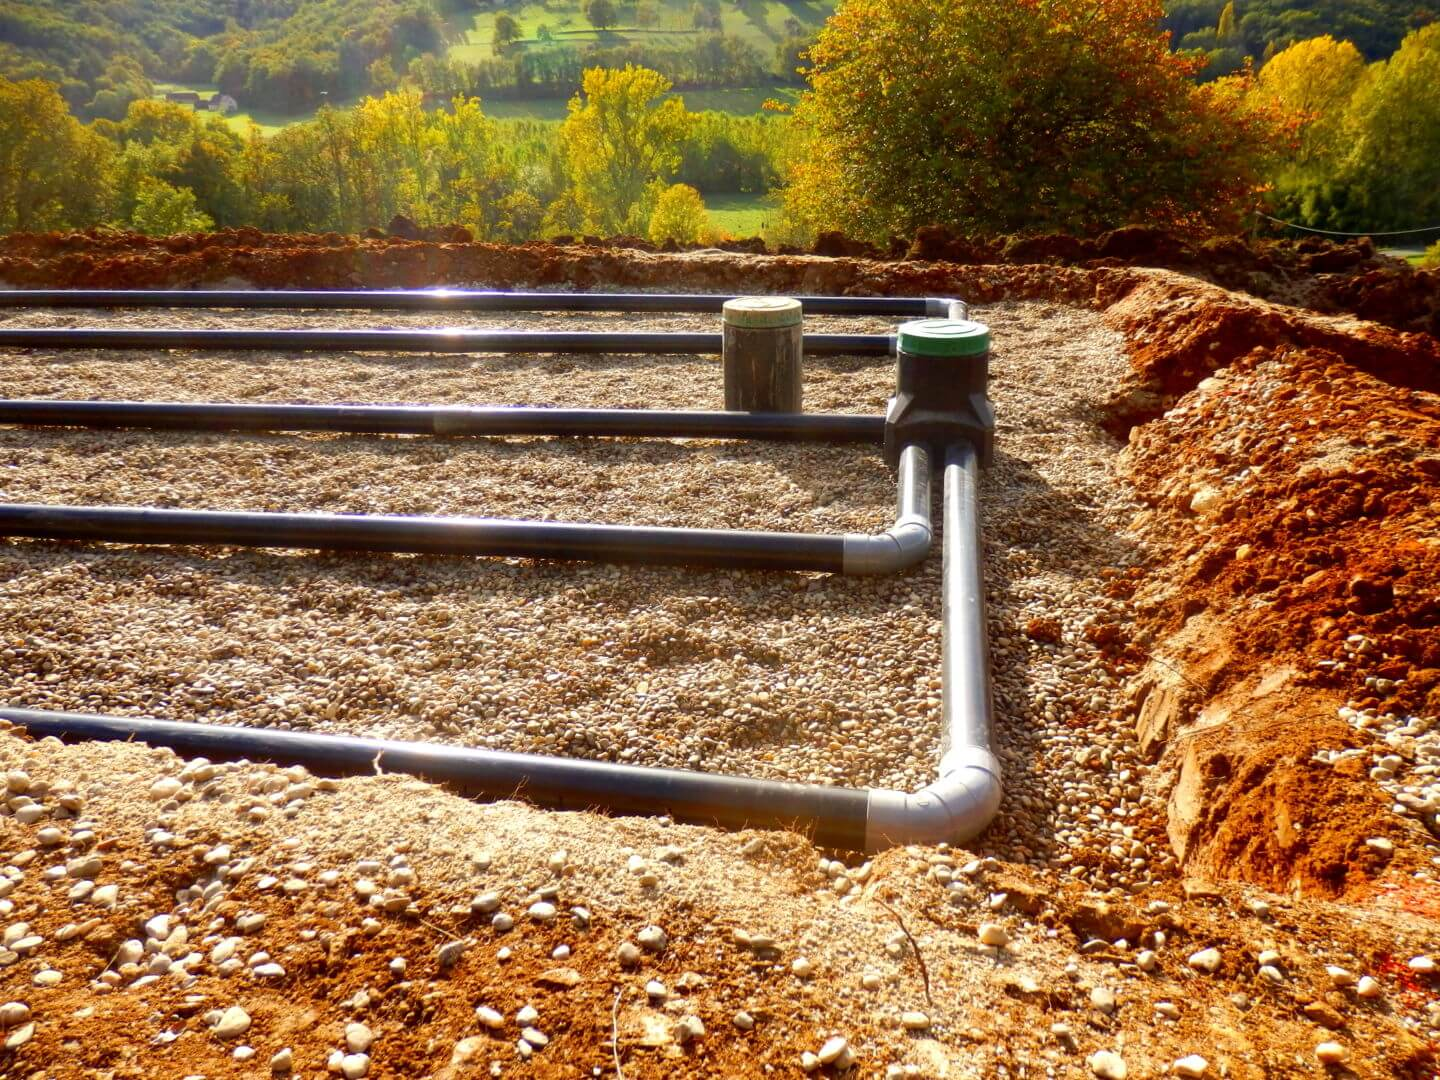 Municipal and Community Septic Systems-Albuquerque Septic Tank Services, Installation, & Repairs-We offer Septic Service & Repairs, Septic Tank Installations, Septic Tank Cleaning, Commercial, Septic System, Drain Cleaning, Line Snaking, Portable Toilet, Grease Trap Pumping & Cleaning, Septic Tank Pumping, Sewage Pump, Sewer Line Repair, Septic Tank Replacement, Septic Maintenance, Sewer Line Replacement, Porta Potty Rentals